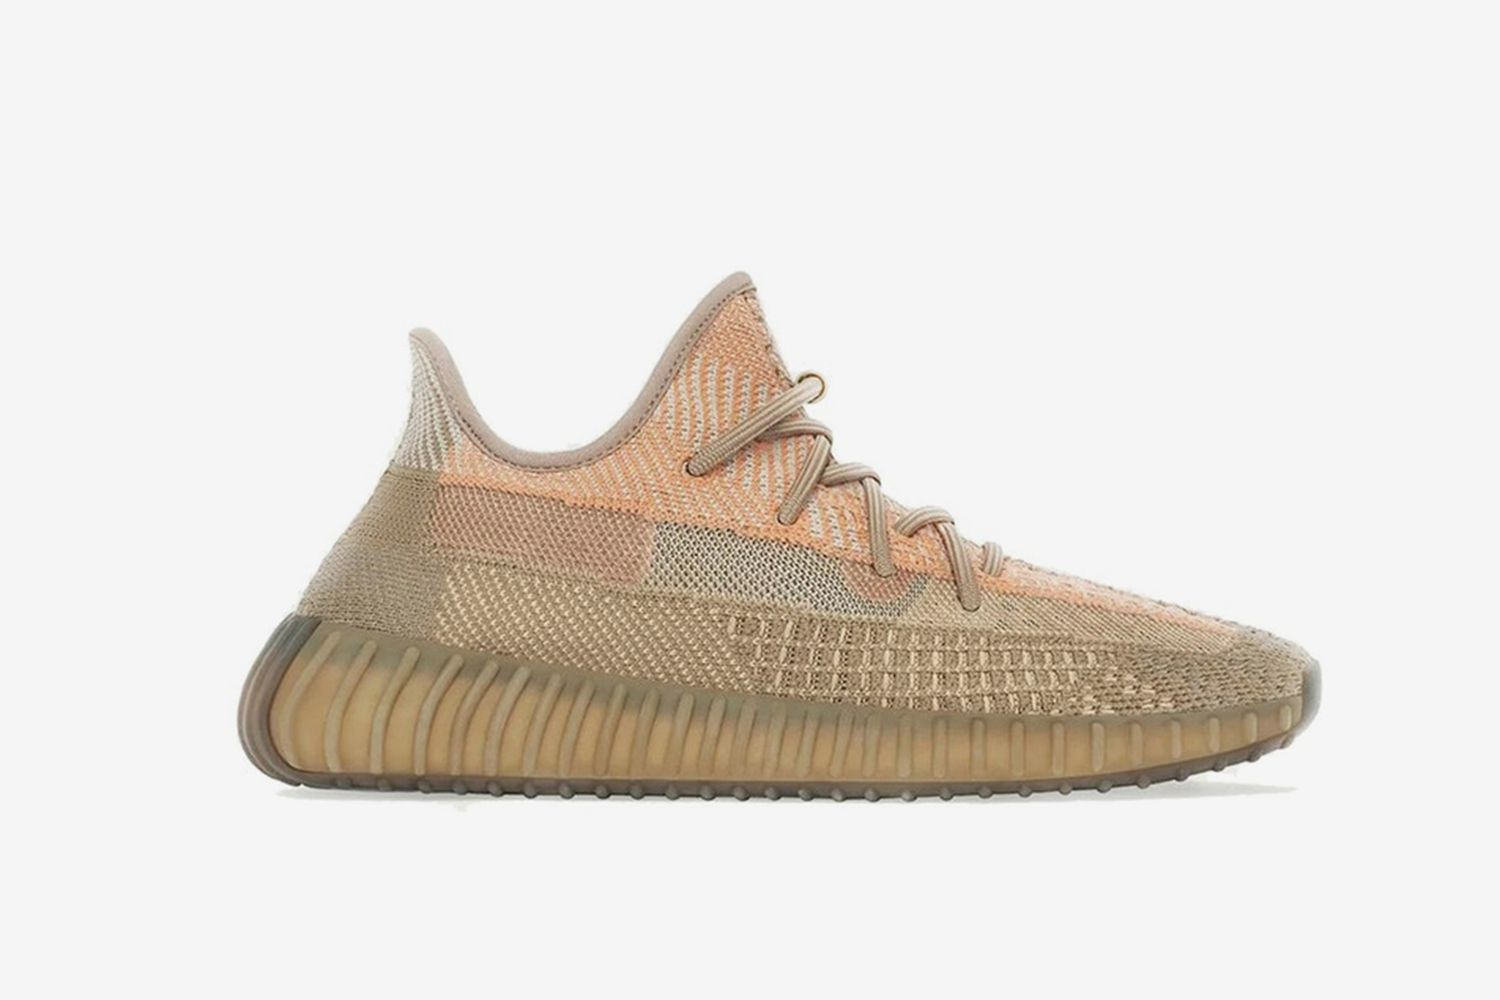 Buy the adidas YEEZY Boost 350 V2